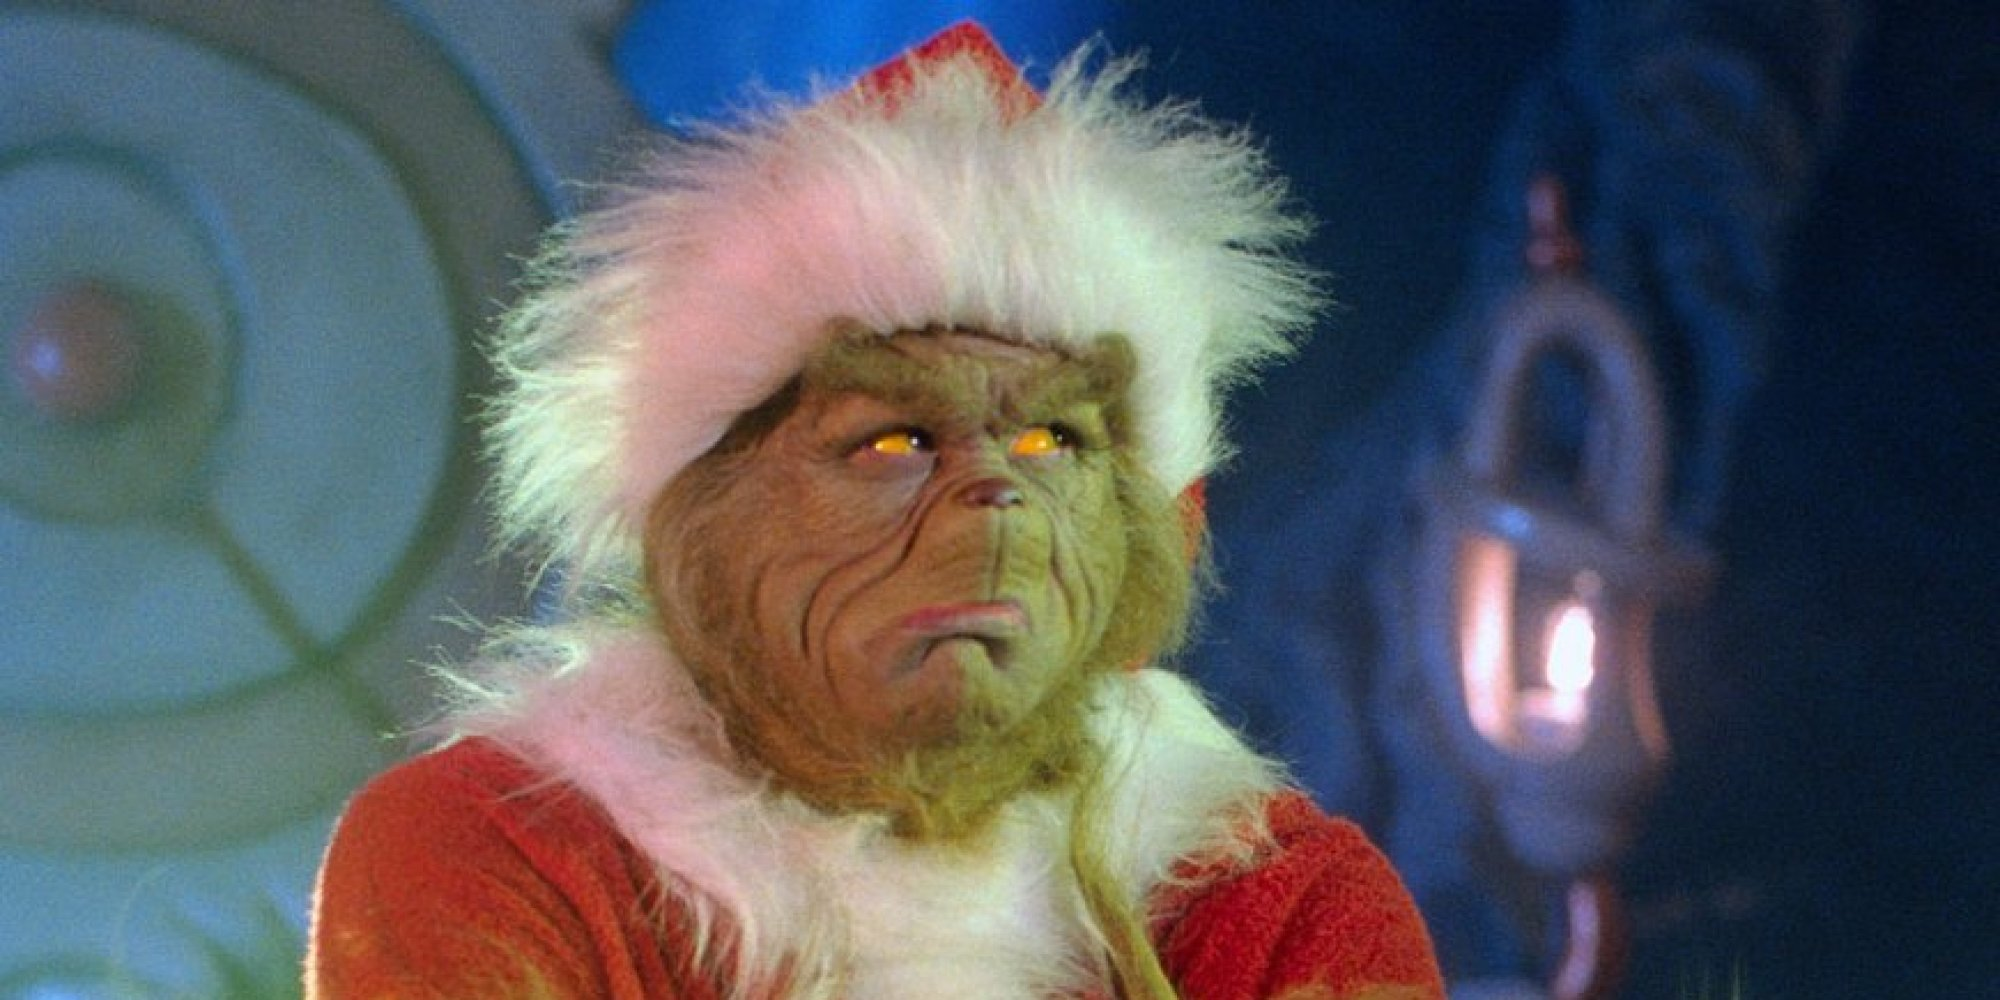 Grinch stealing lights christmas decorations - How The Grinch Gave Universal Studios Hollywood A Christmas To Call Its Own Huffpost